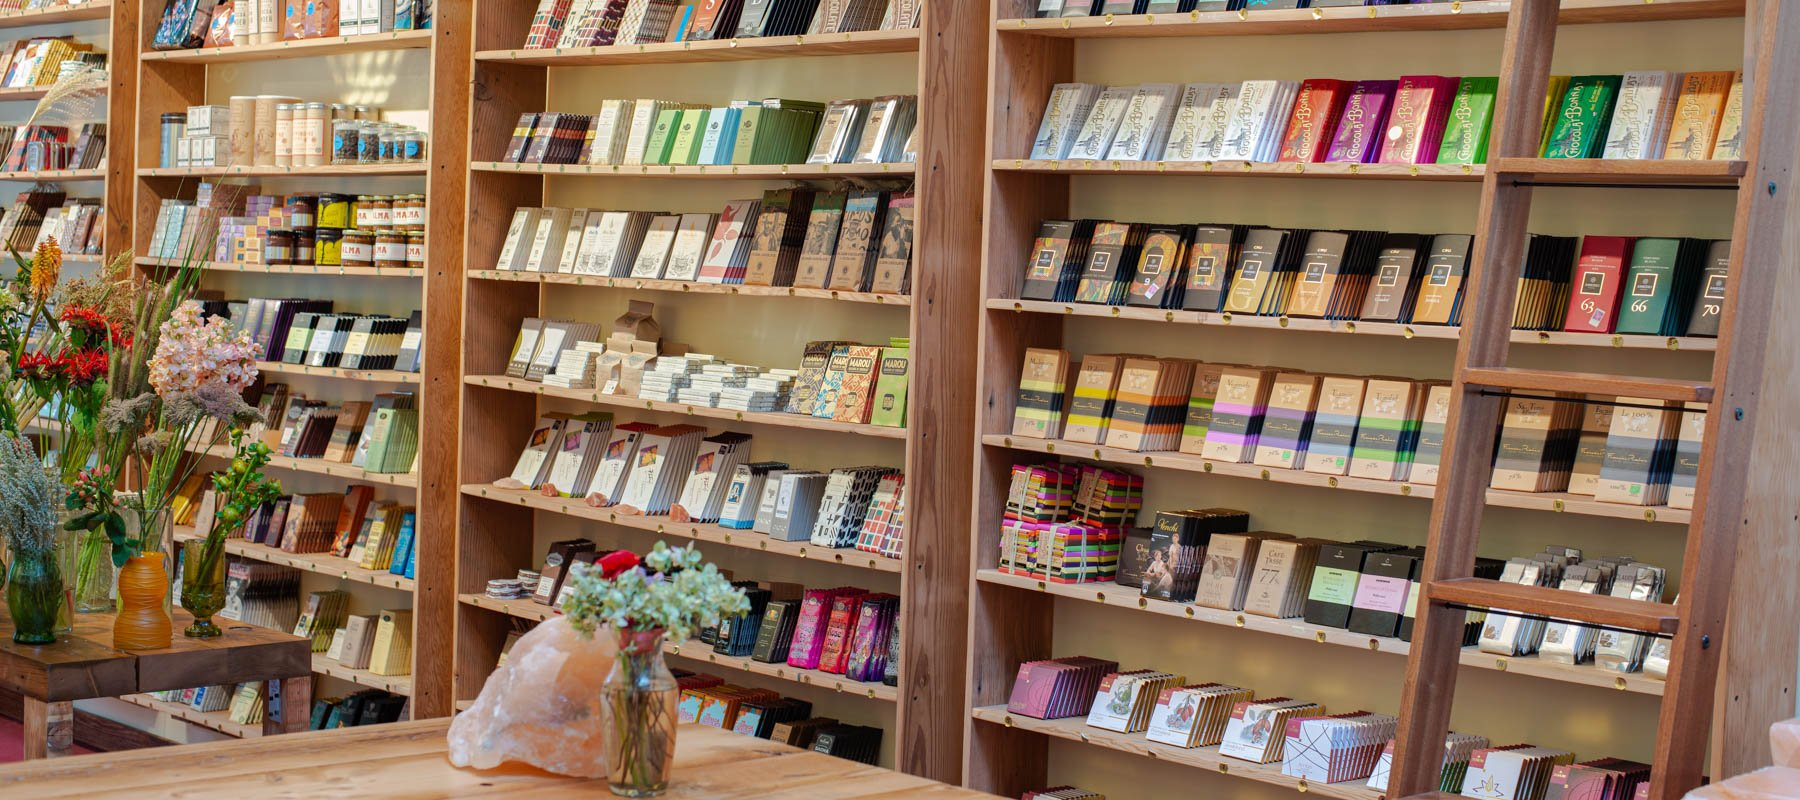 The largest curated collection of craft chocolate in the world.